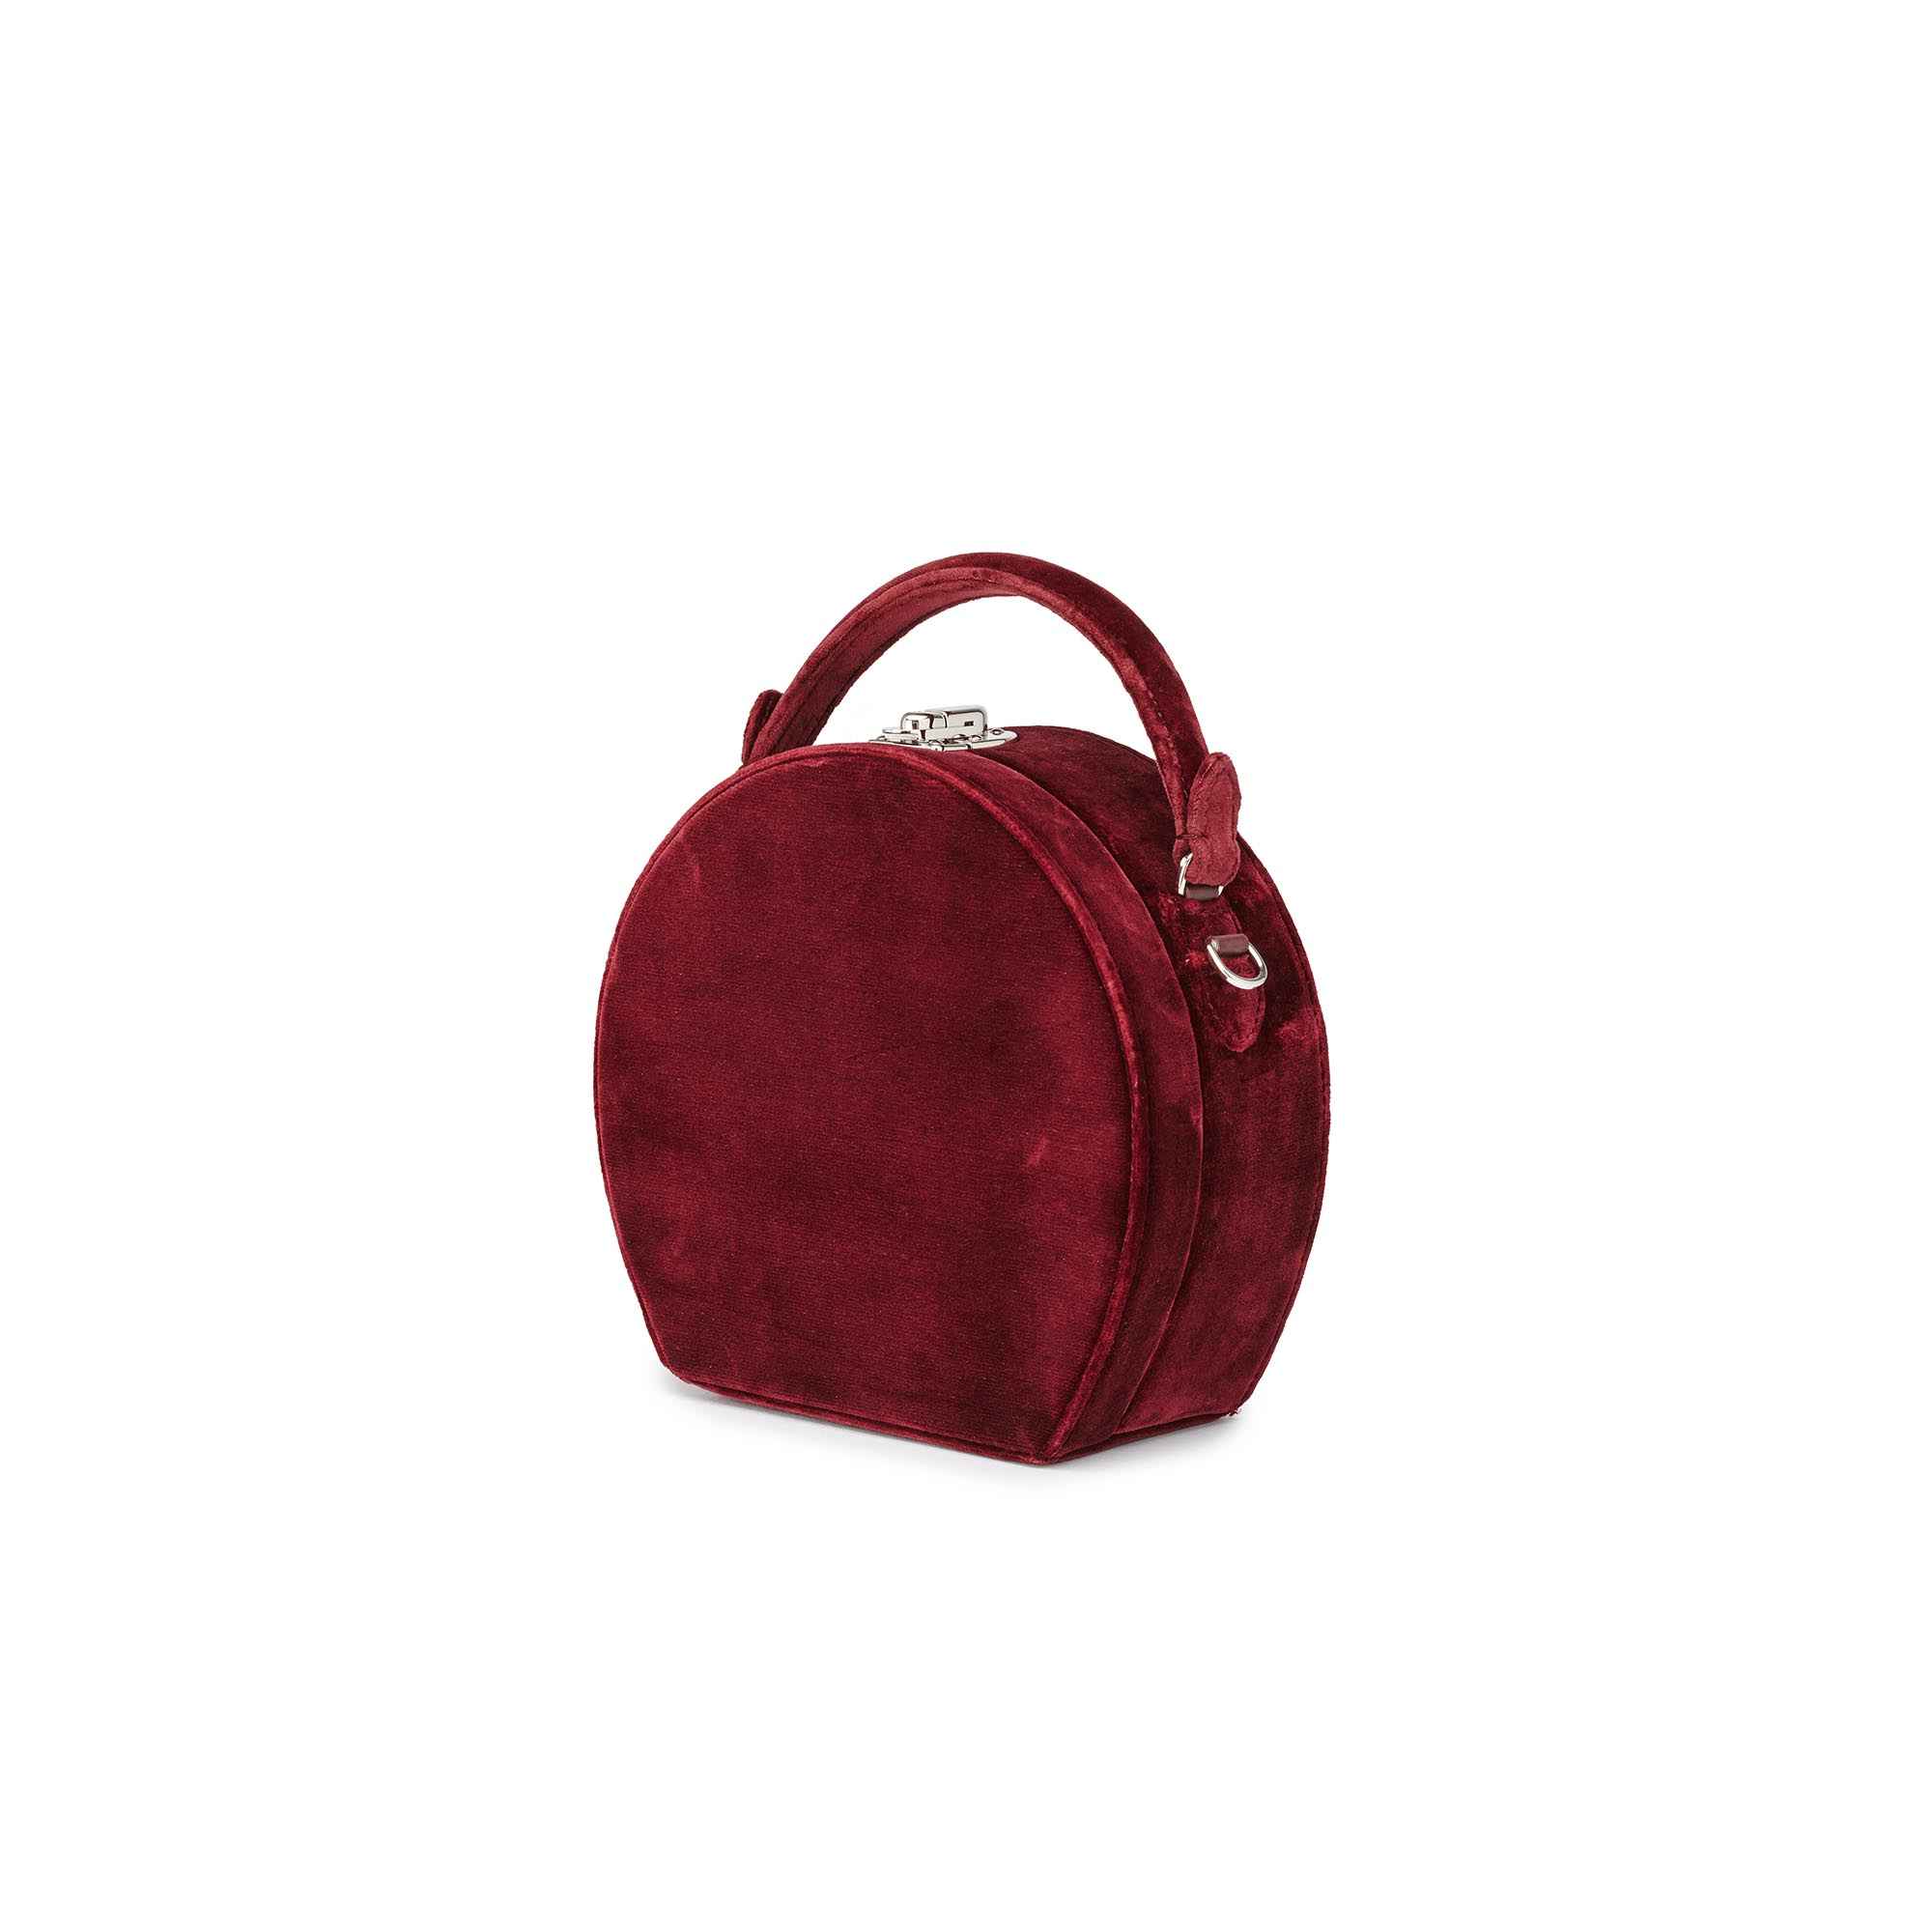 Regular-Bertoncina-bordeaux-velvet-bag-Bertoni-1949_02